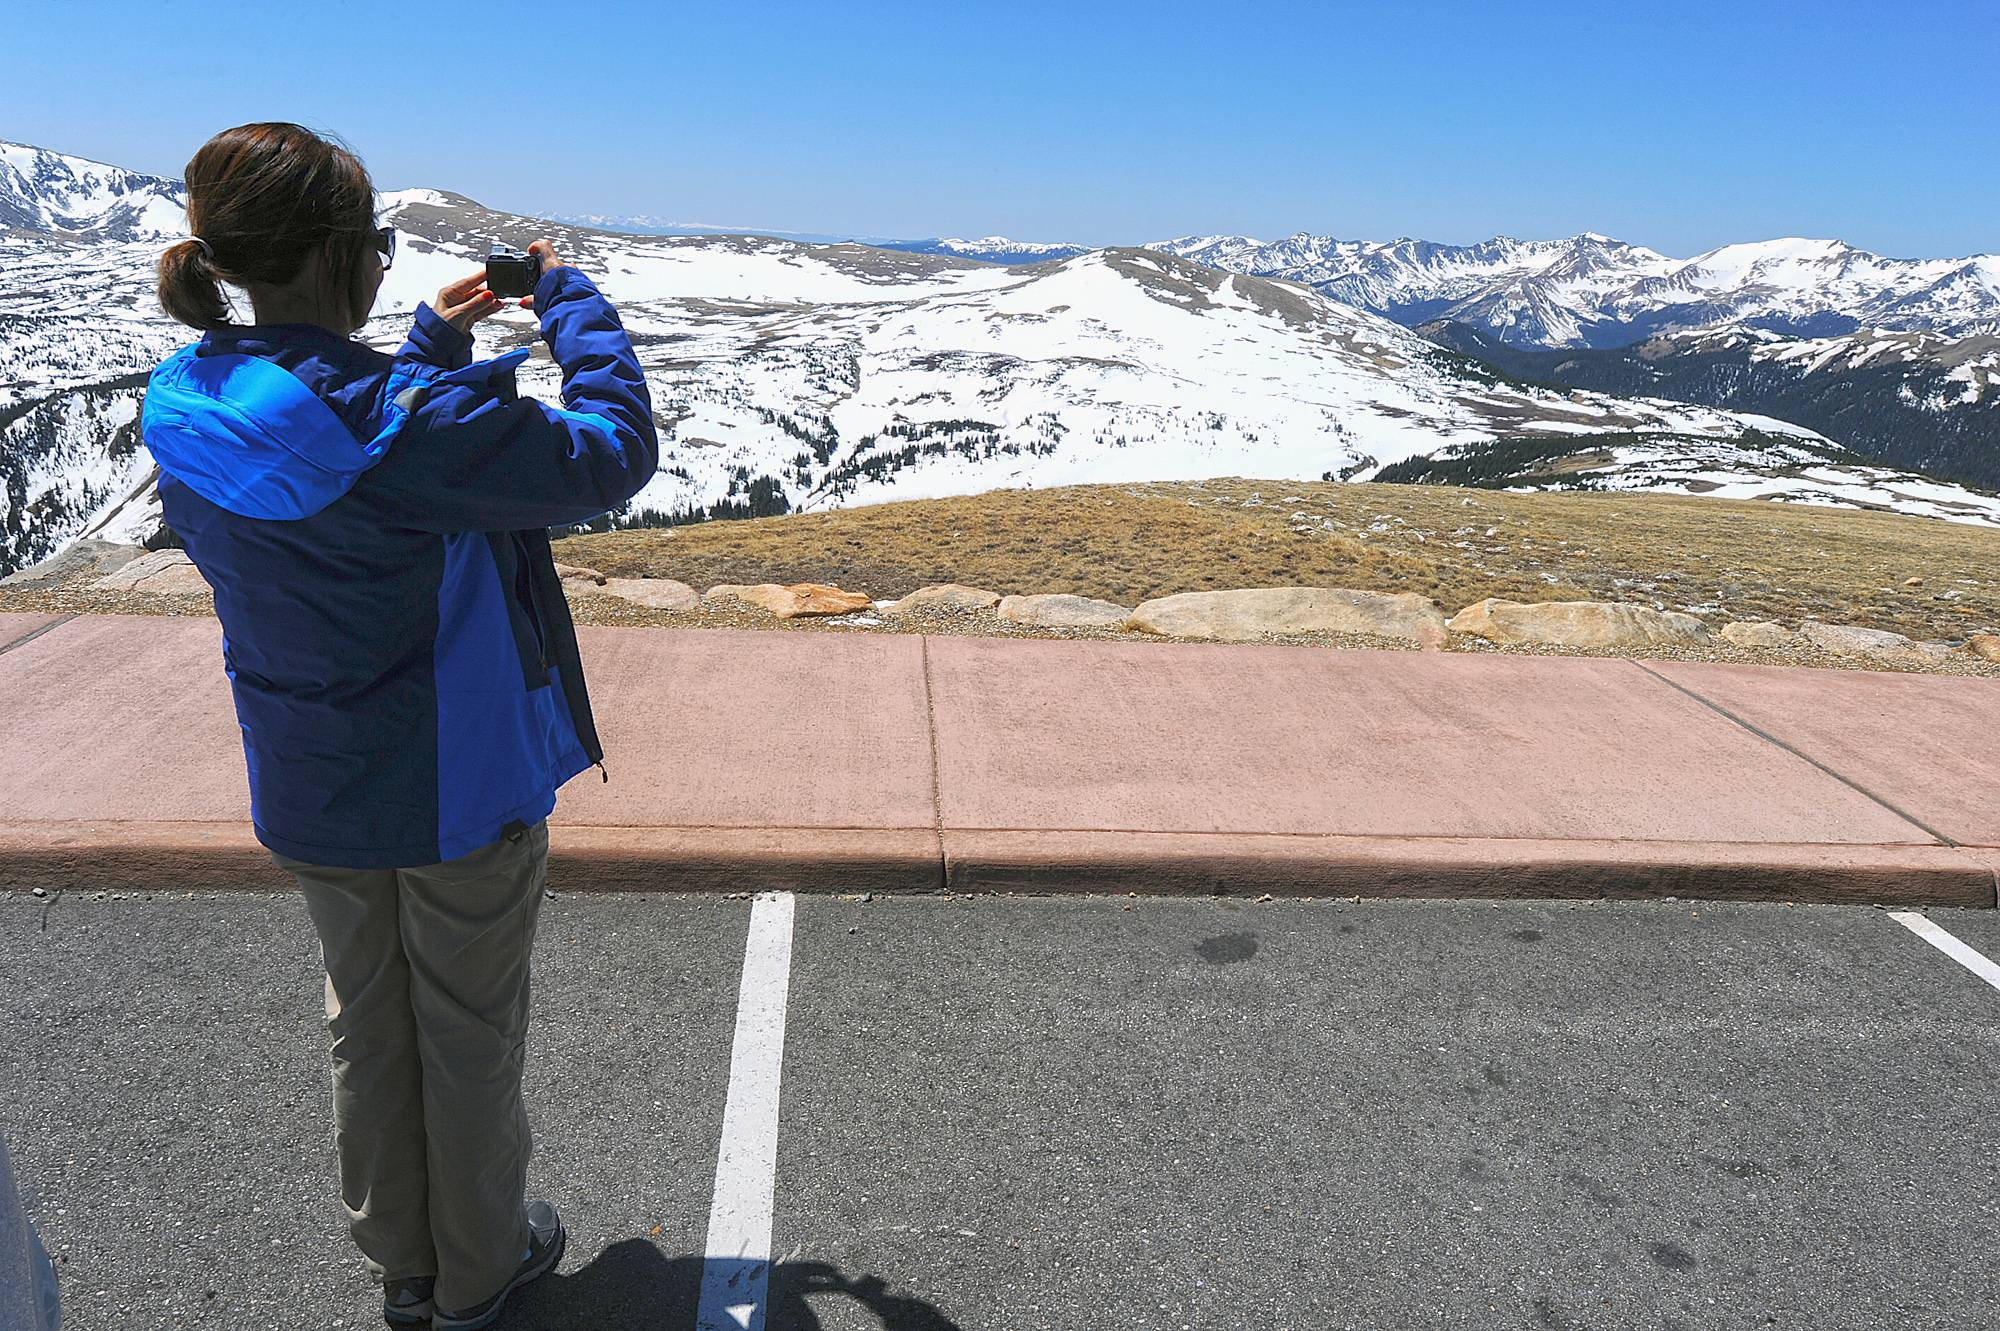 ASSOCIATED PRESSBrazilian national Maria Mackmillan snaps a photo from Gore Overlook on Trail Ridge Road in Rocky Mountain National Park outside Estes Park, Colo. Two fatal lightning strikes on consecutive days in July 2014 pinpoint dangers not always apparent to visitors to the 11,000-foot exposed high country of Rocky Mountain National Park. Afternoon storms visible miles away arrive overhead suddenly.